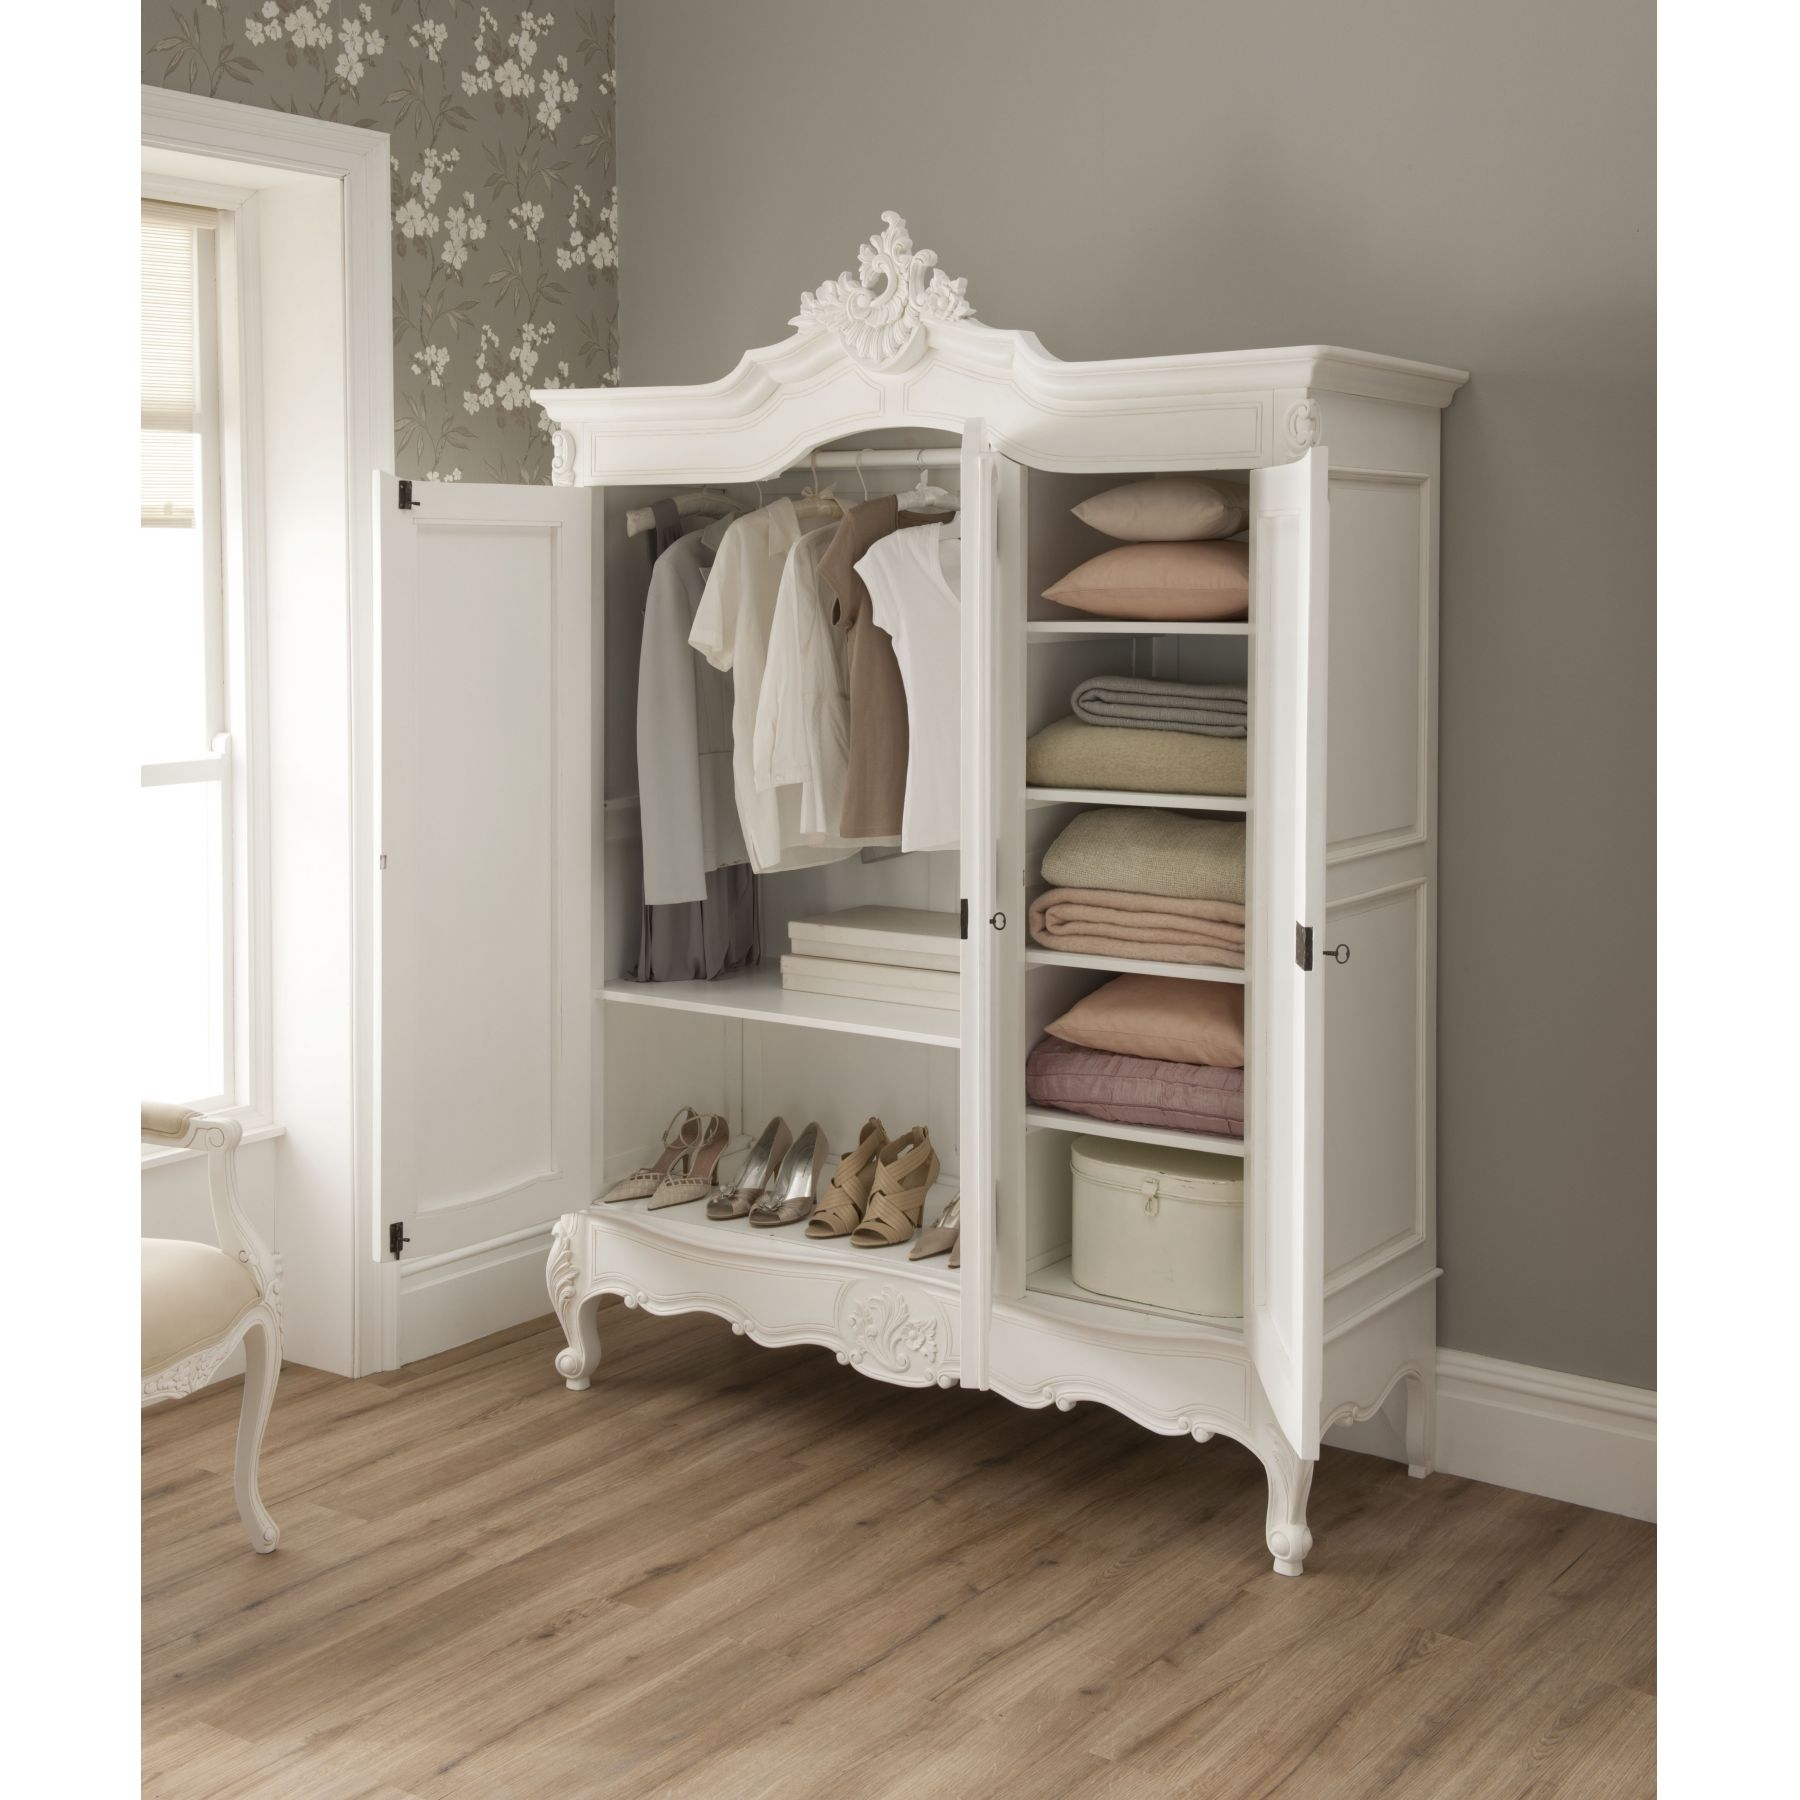 A Wardrobe Is The Perfect Addition To A Bas Room To Stylishly For Cheap Baby Wardrobes (Image 1 of 25)